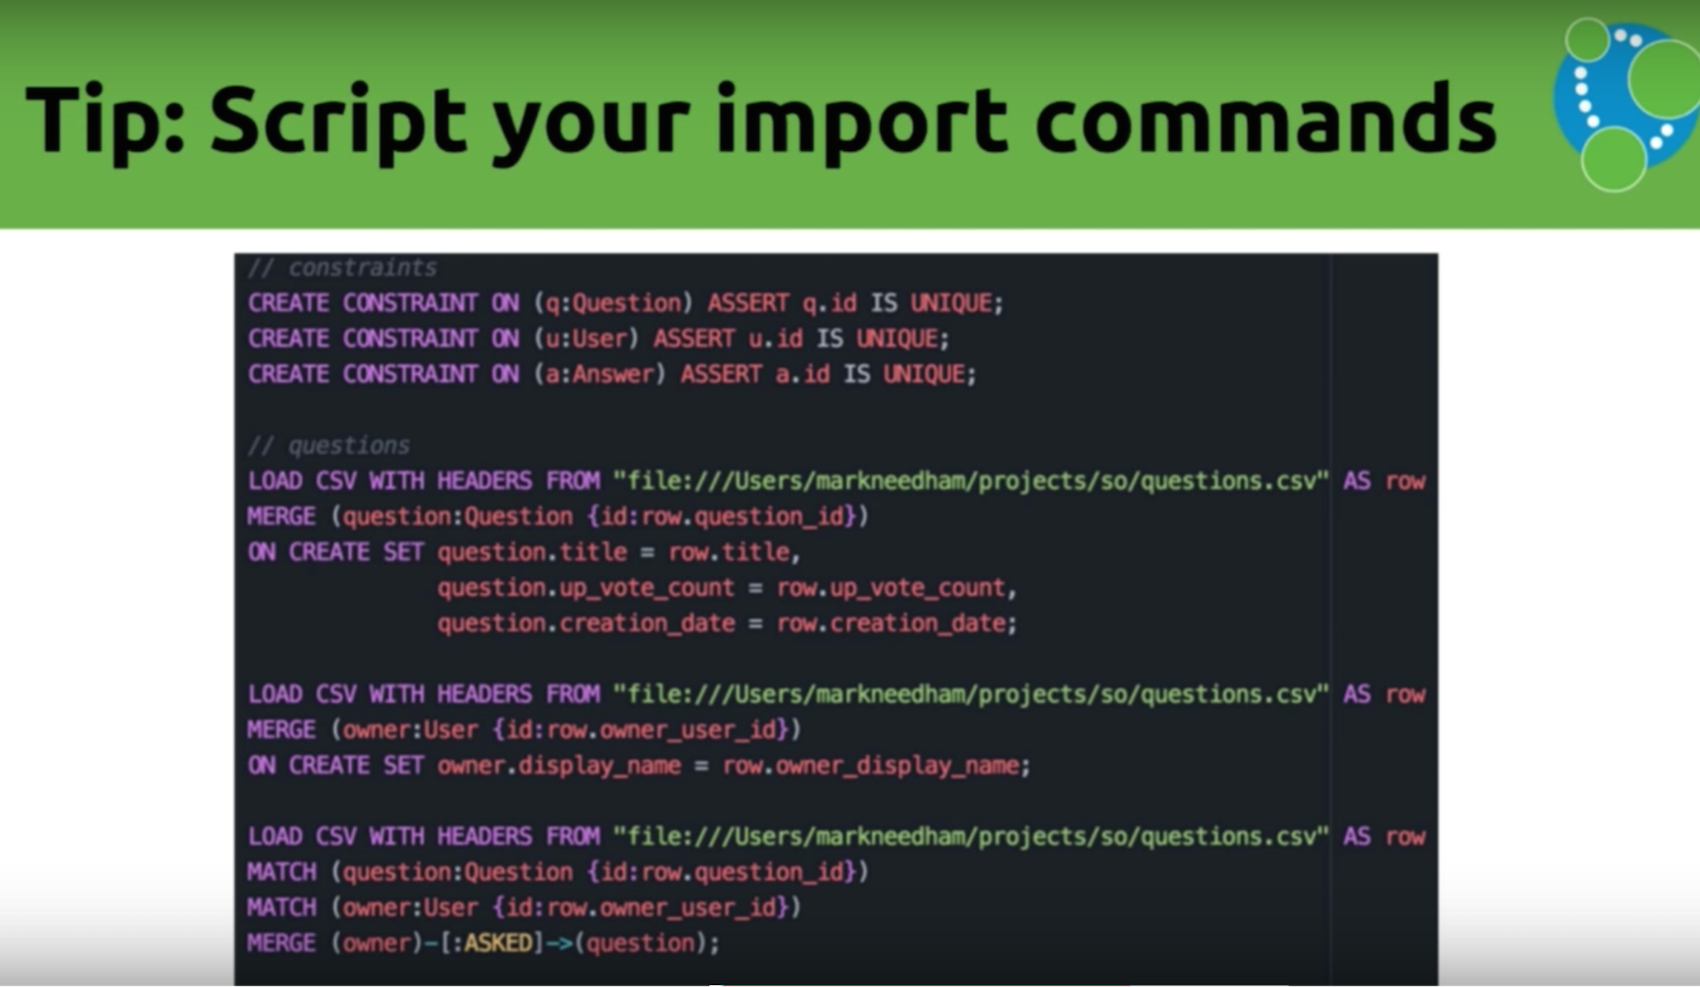 Data import tip: Script your import commands